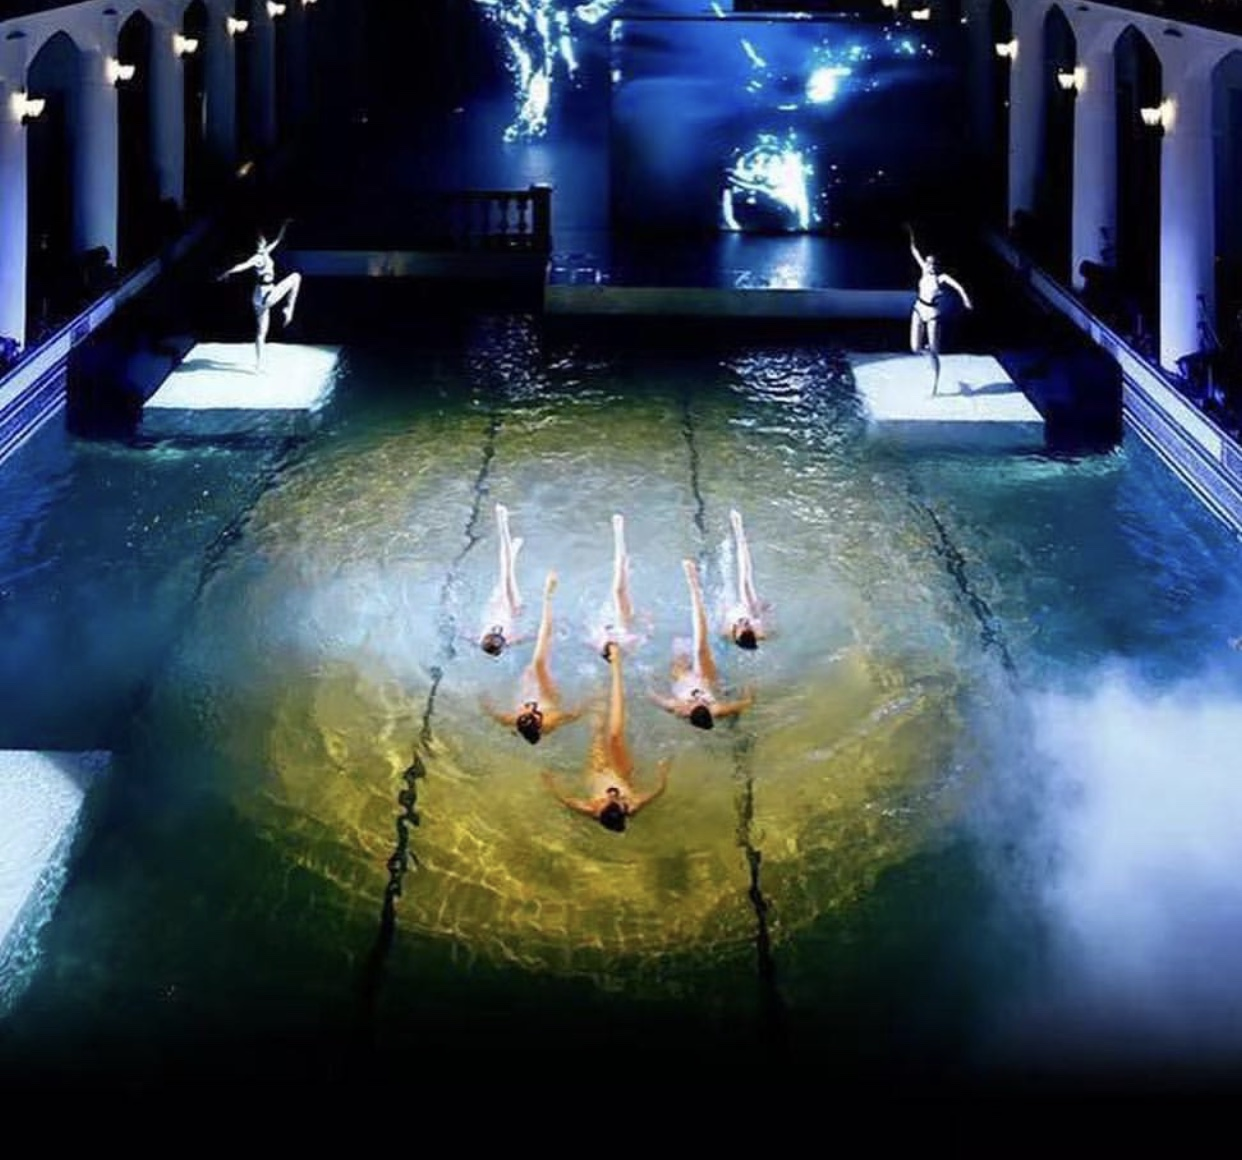 Synchronized swimmers from Aquabatix perform at BMW X7 launch in China